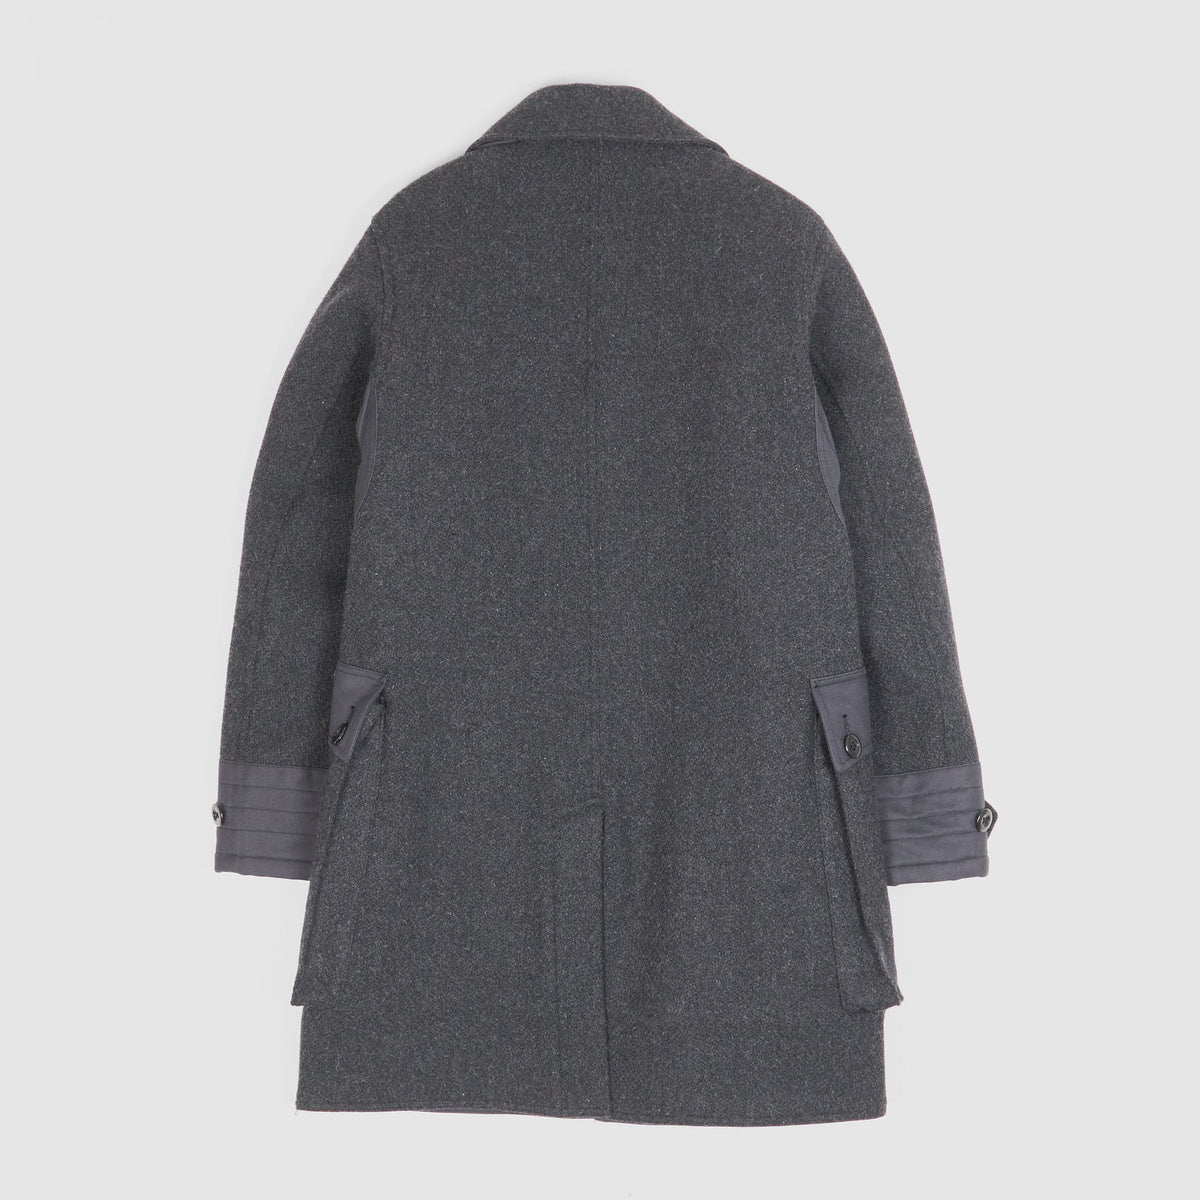 Neighborhood Military Wool Coat